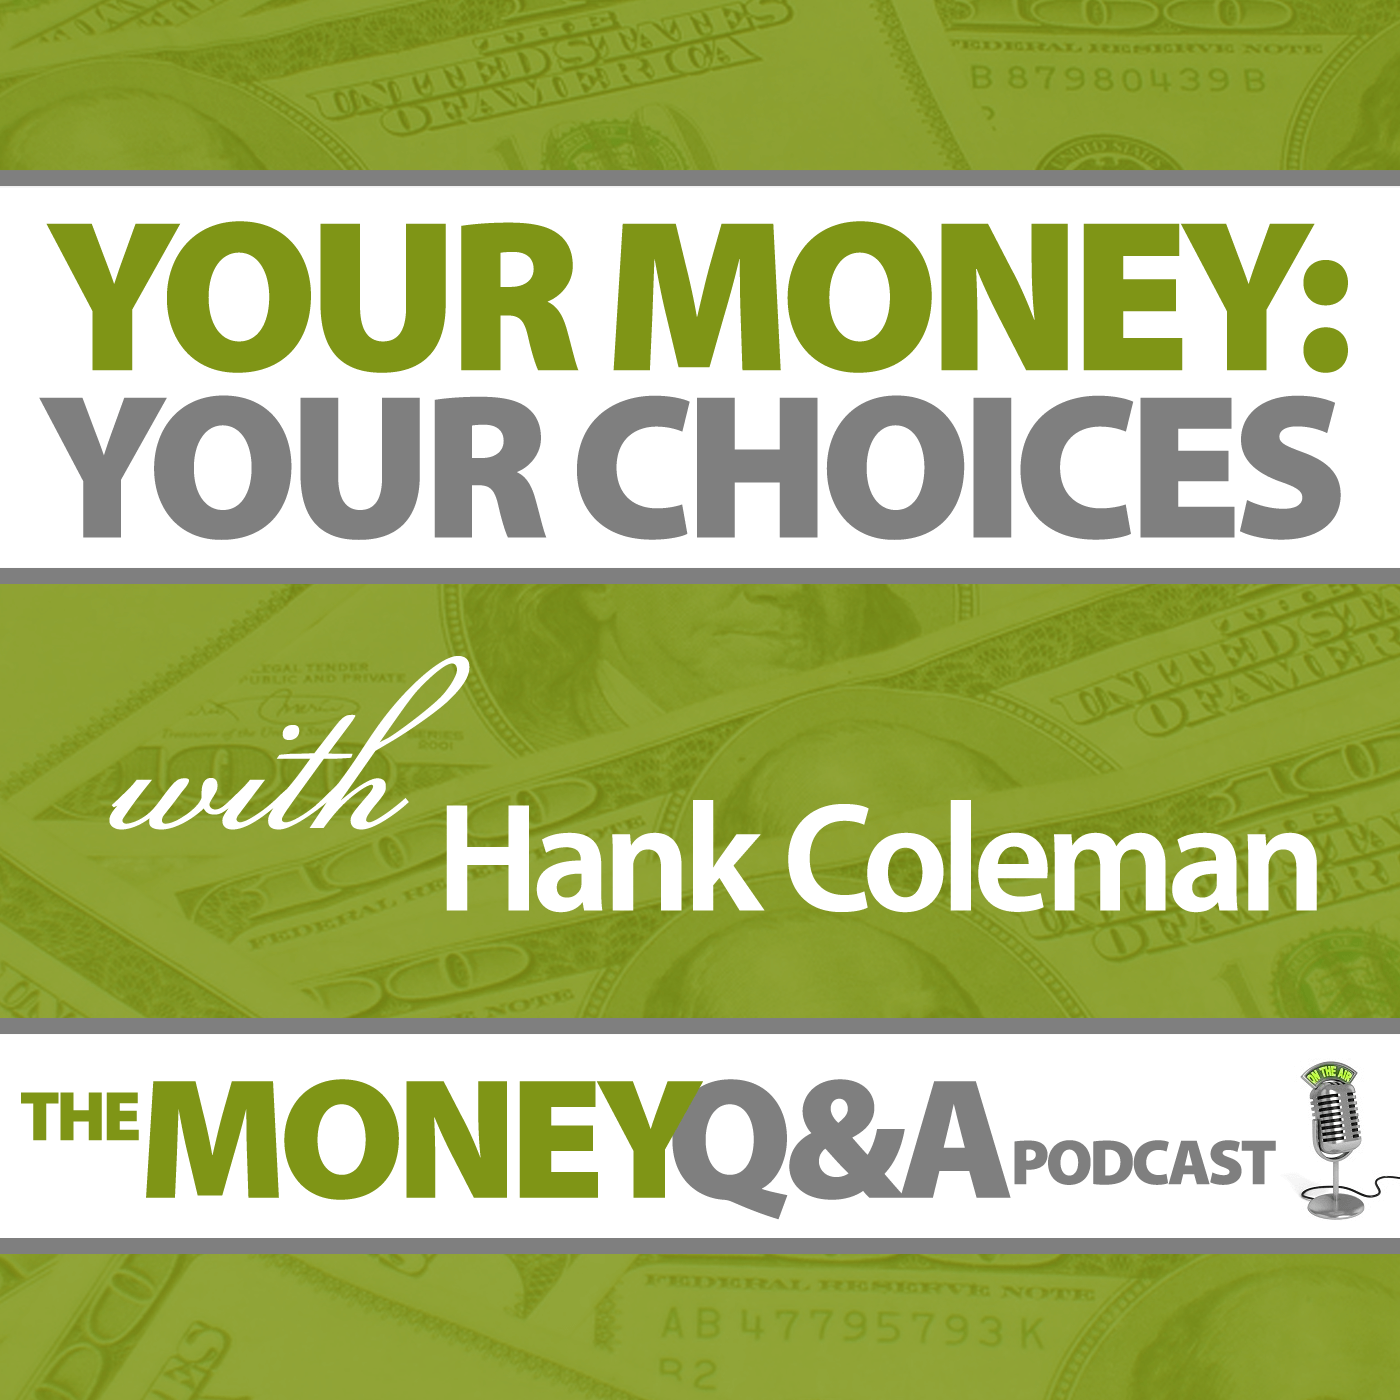 Your Money: Your Choices